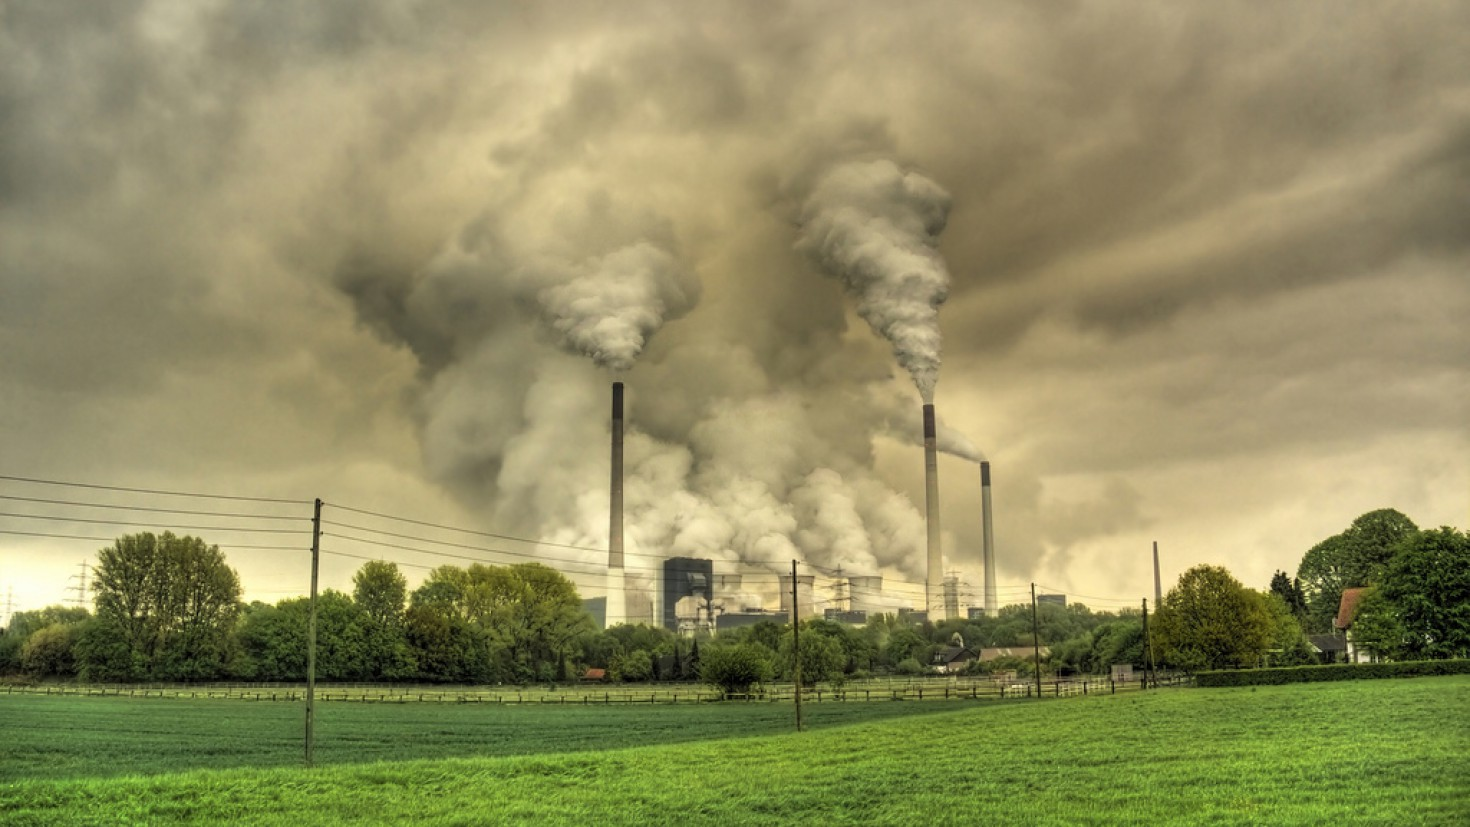 Coal Power plant in Gelsenkirchen, germany, 2010 (foto: guy gorek / FLICKr / creative commons)